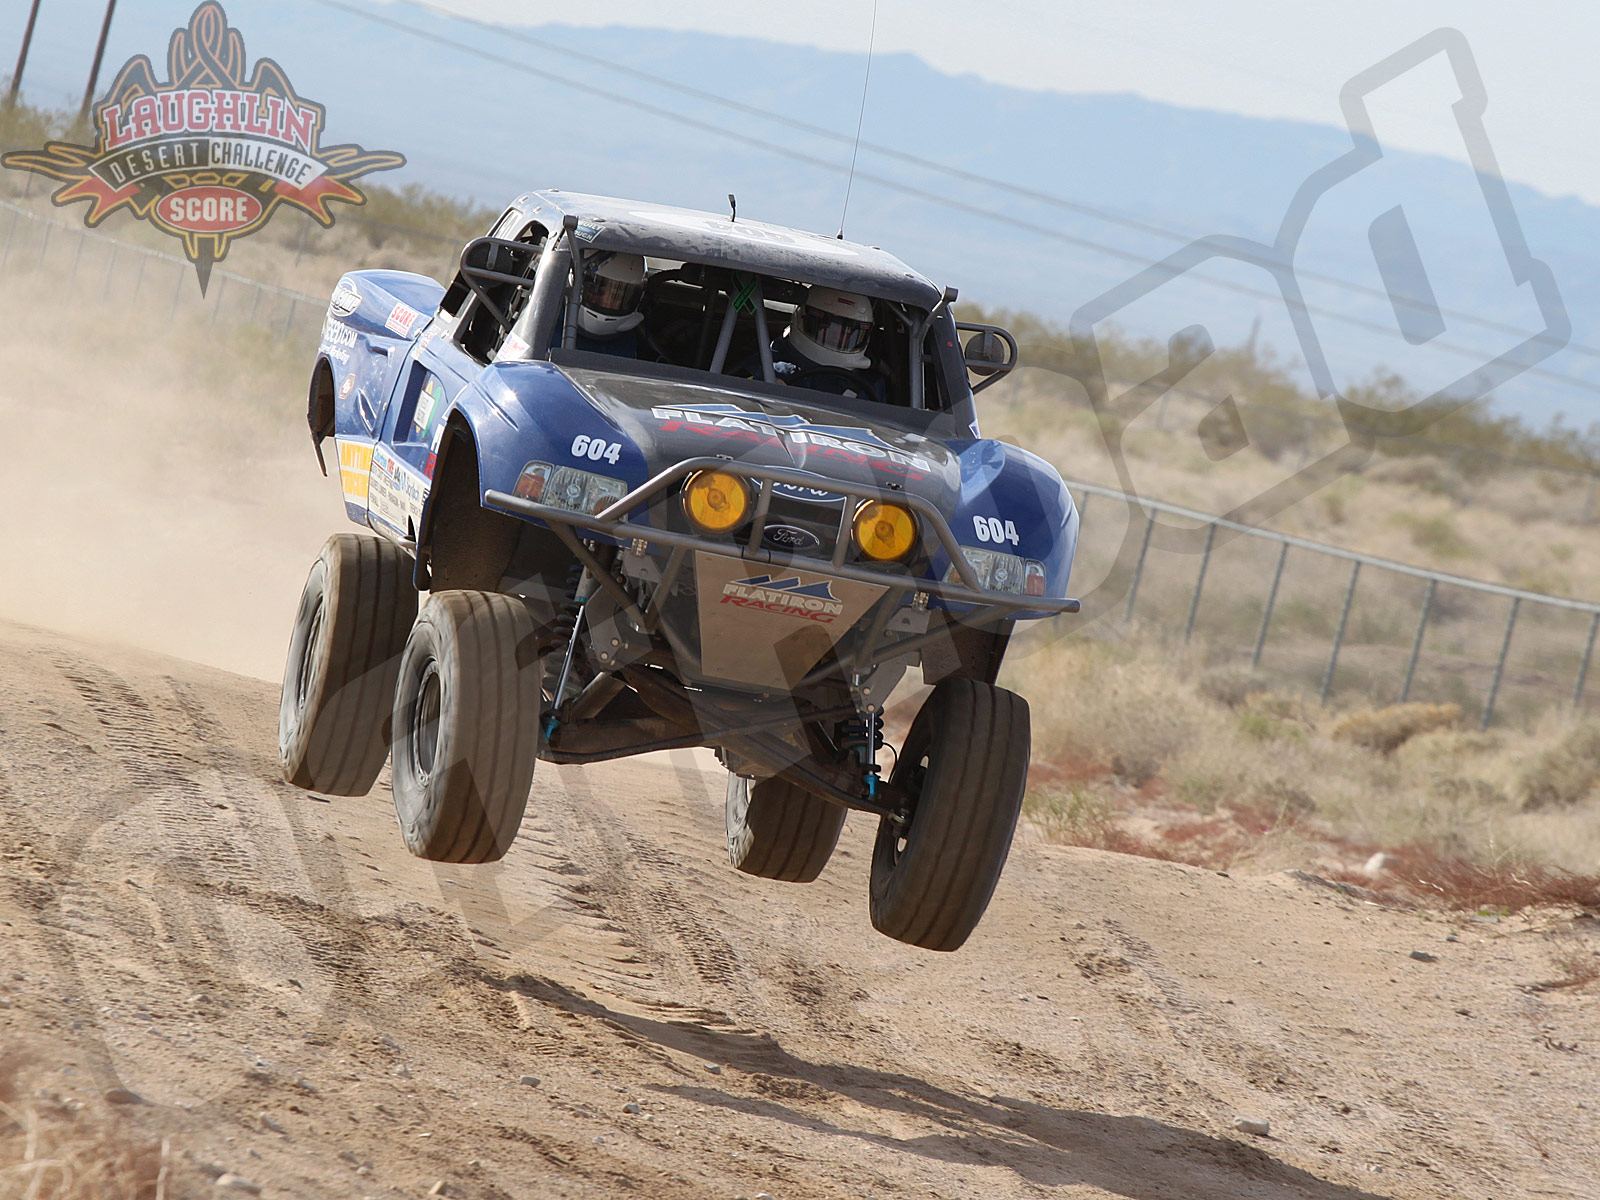 012011or 6610+2011 score laughlin desert challenge+truck classes